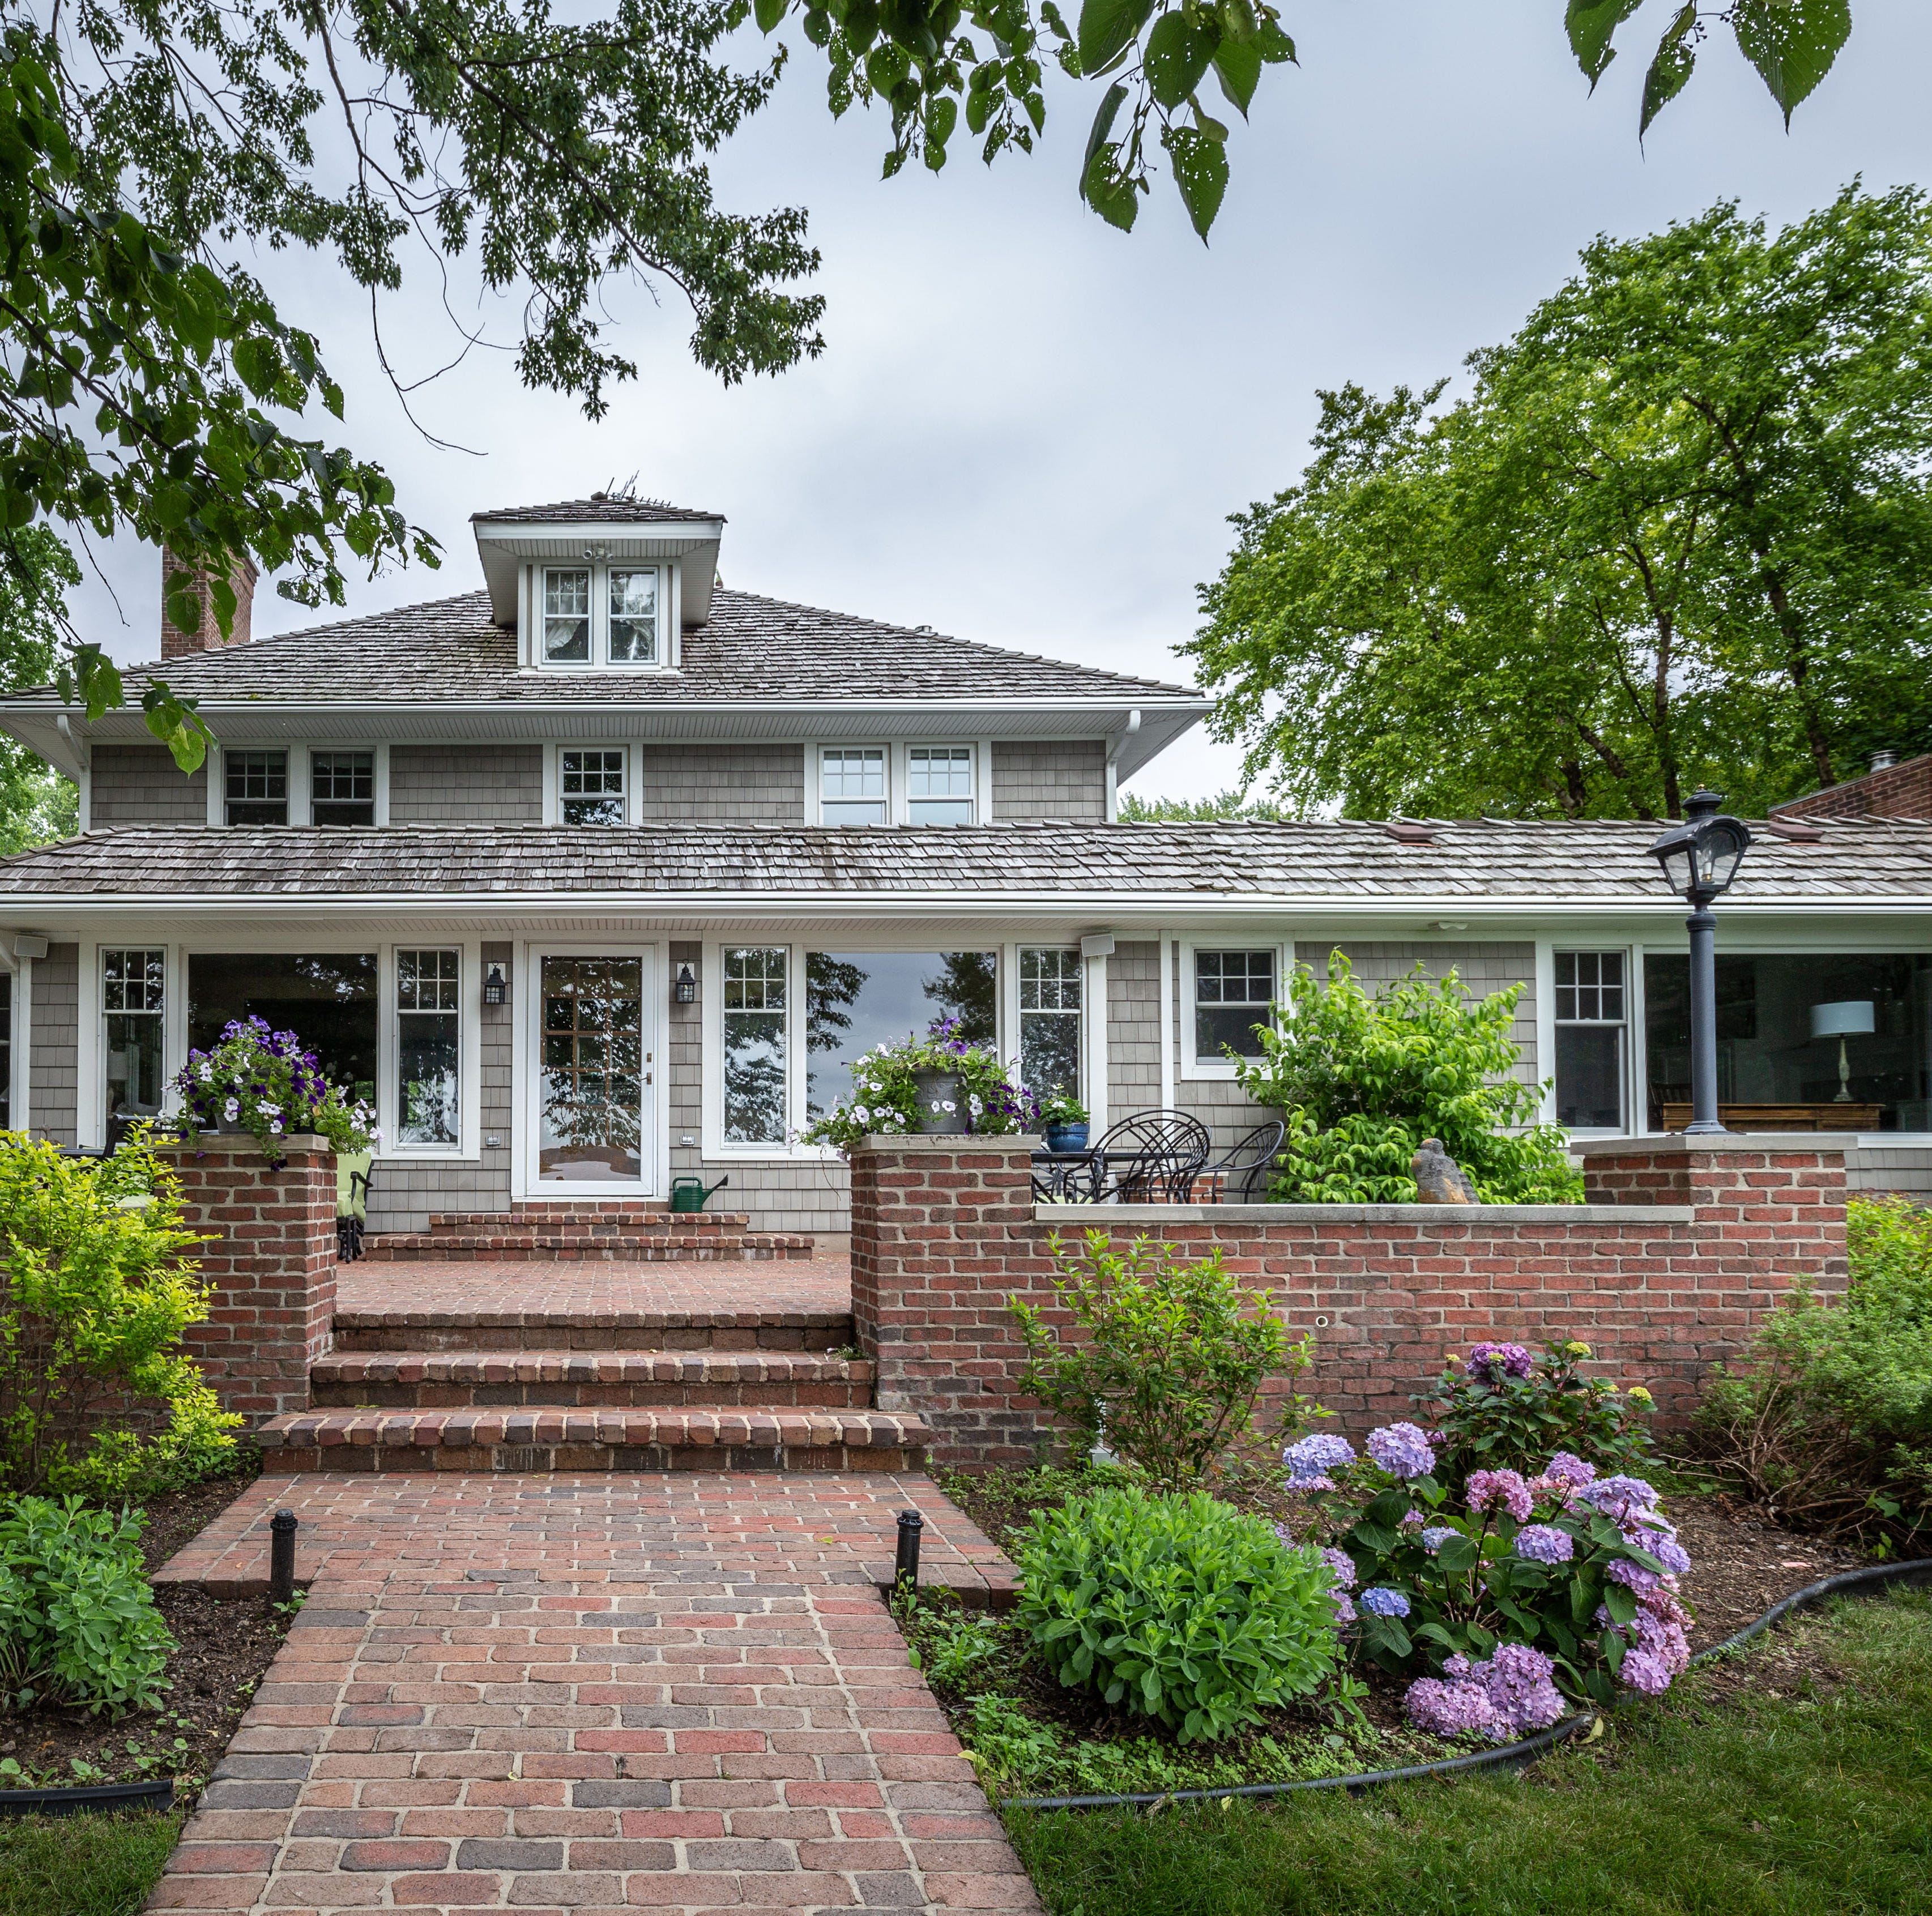 Oconomowoc Lake home sells for $2.4 million in two days